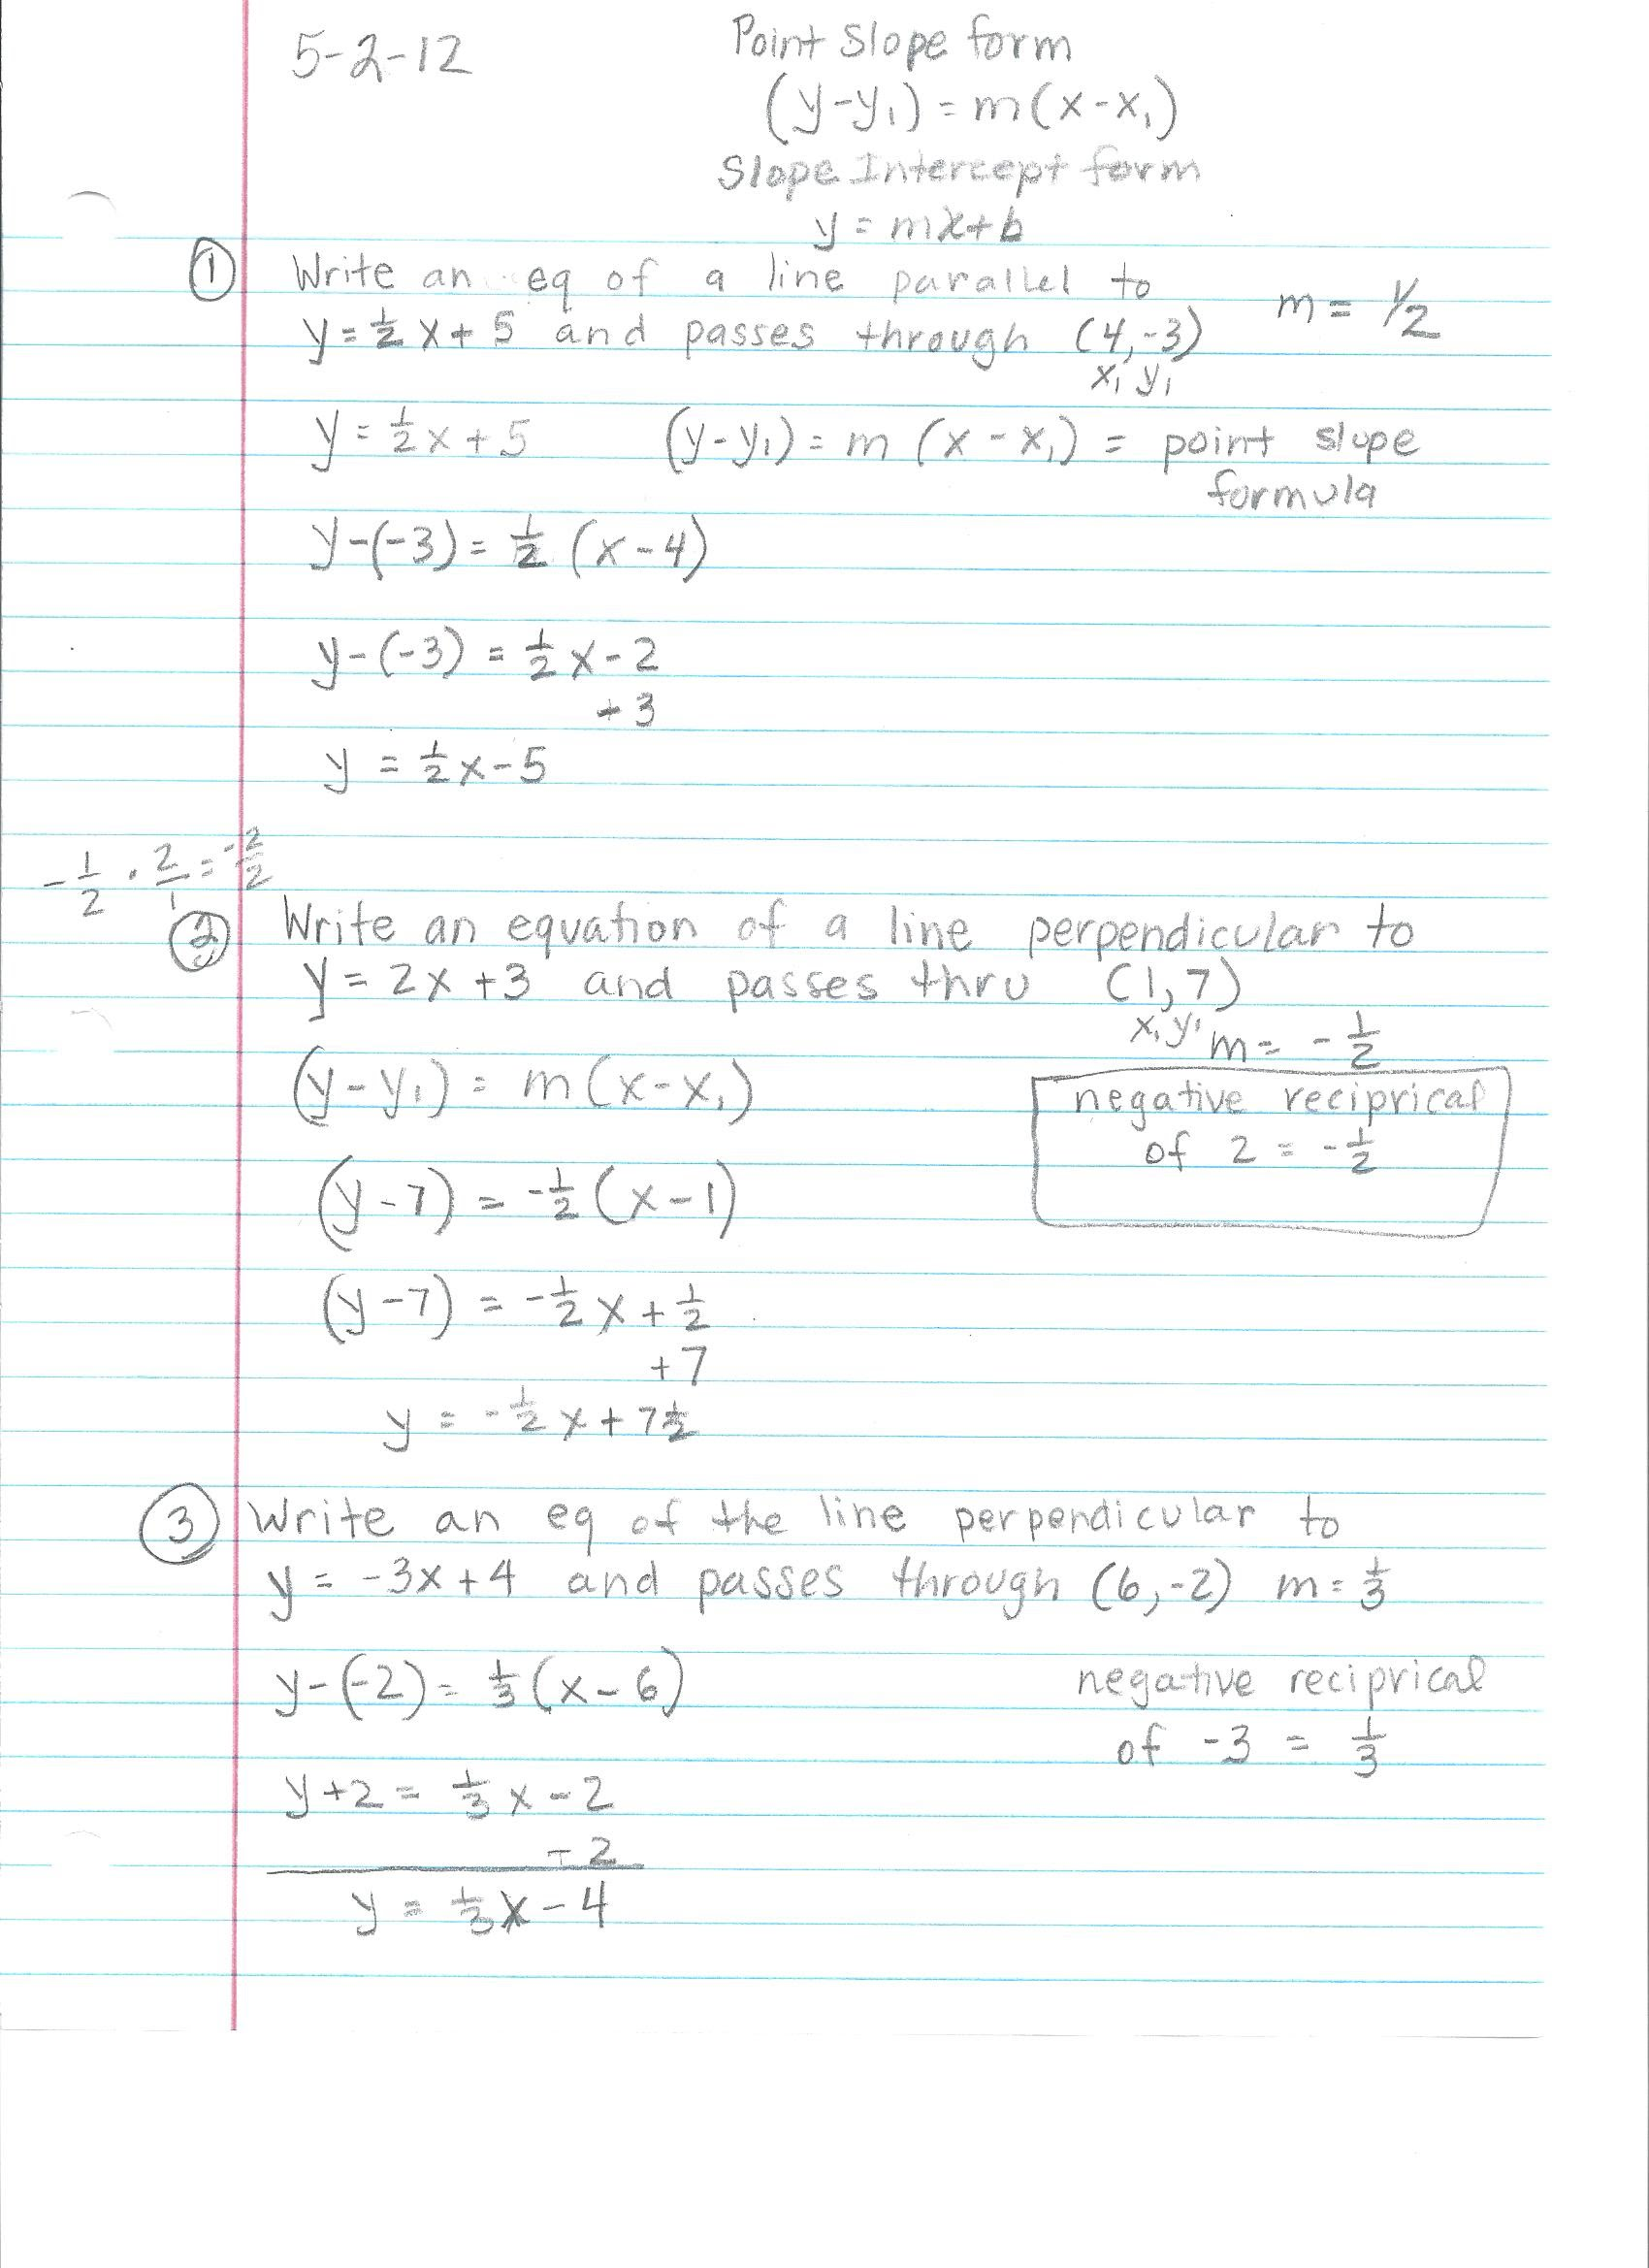 Algebra 1 Notes For 9th Grade